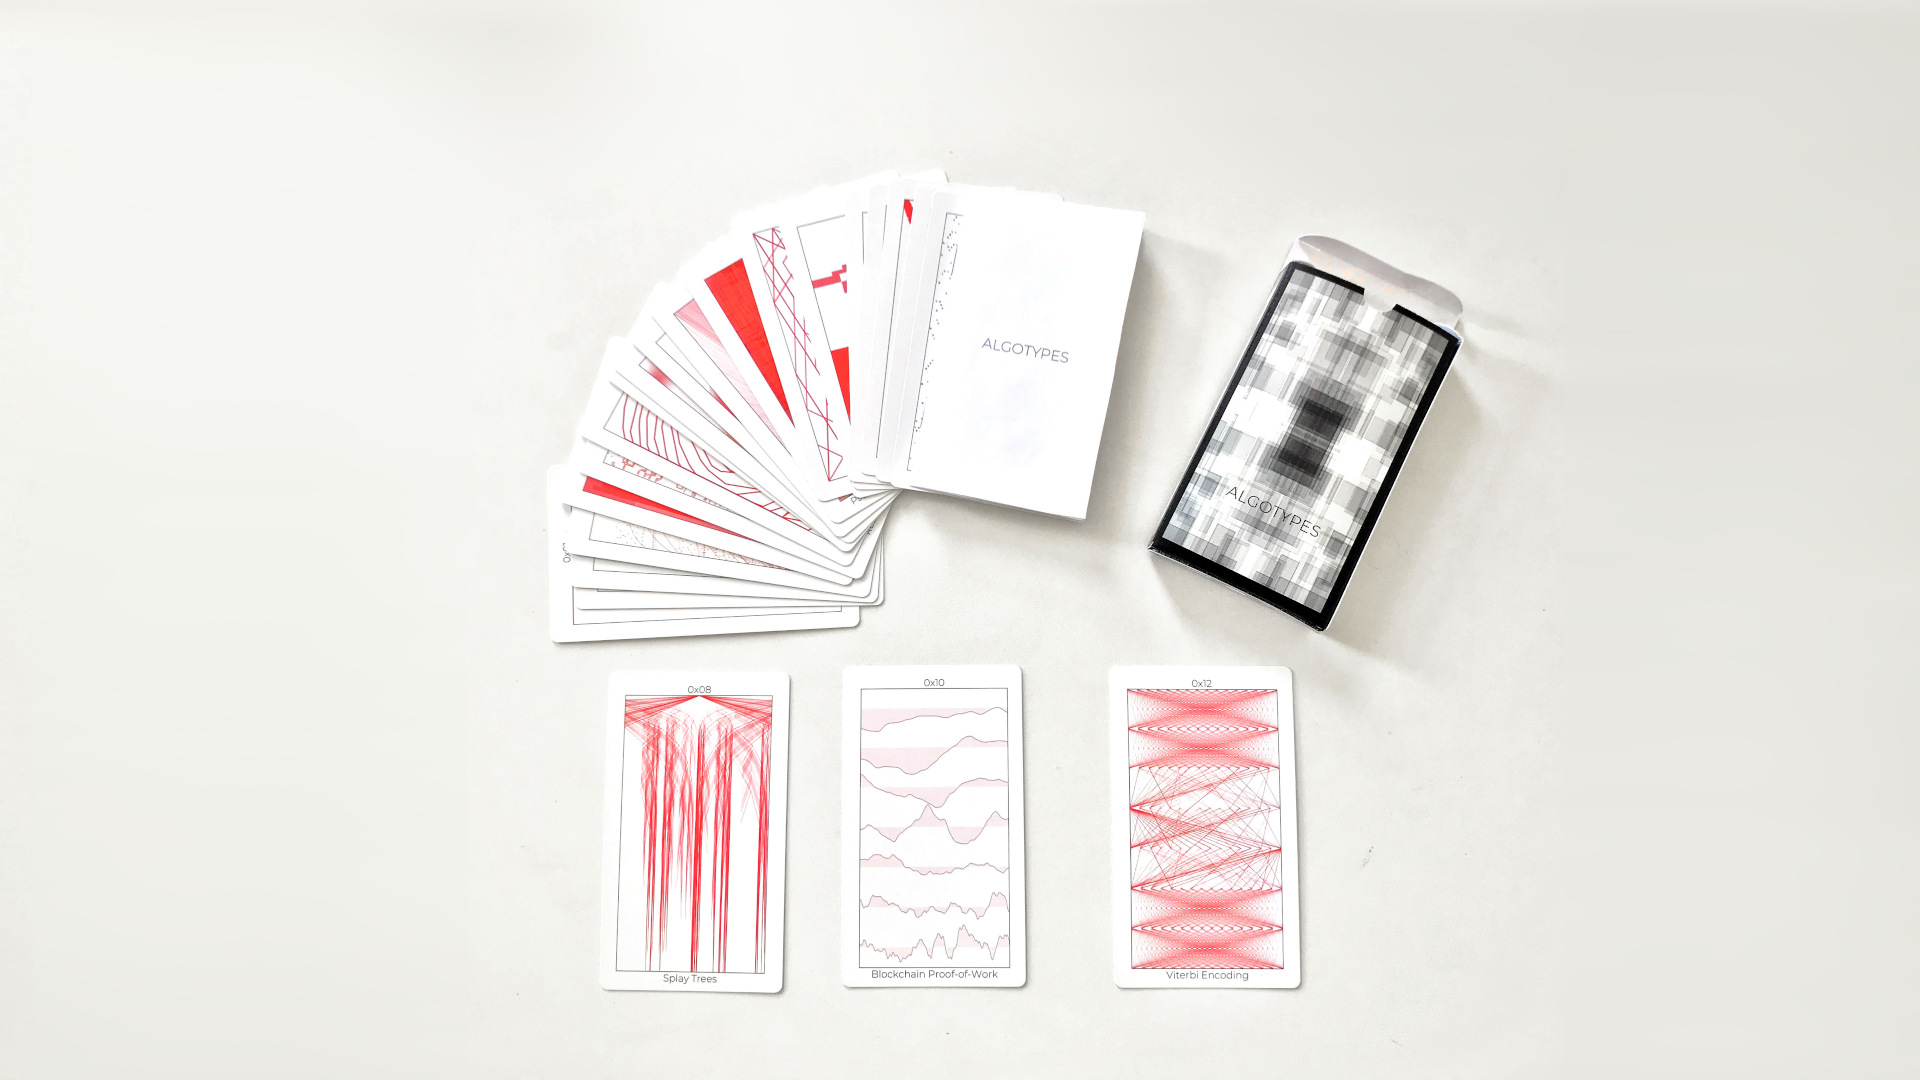 a deck of cards with black and red images on them splayed on a white background